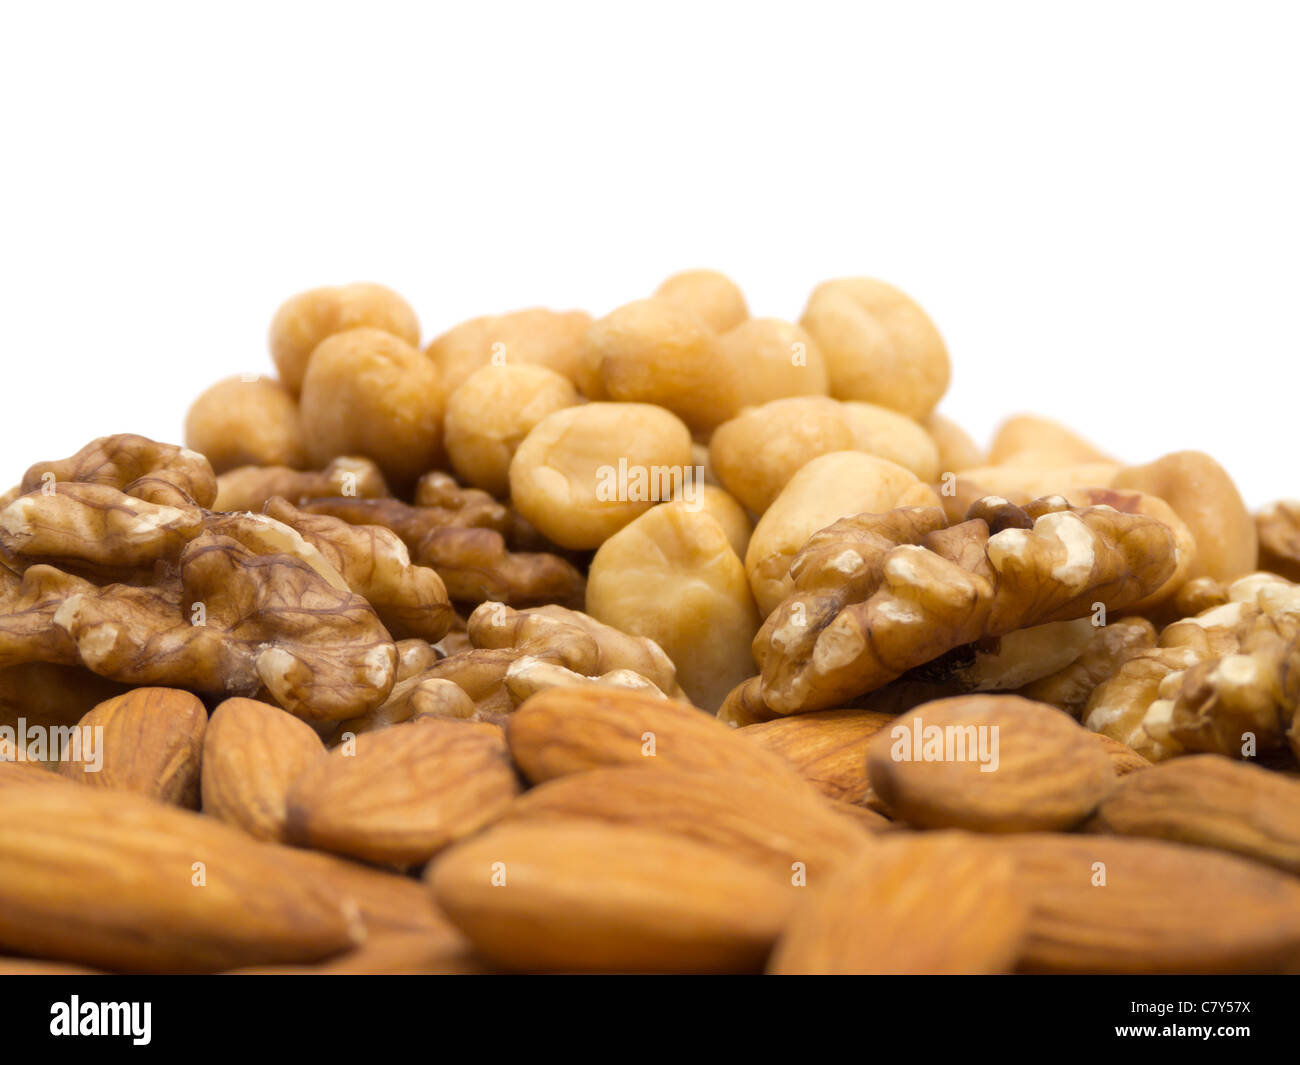 Pile of Nuts Stock Photo